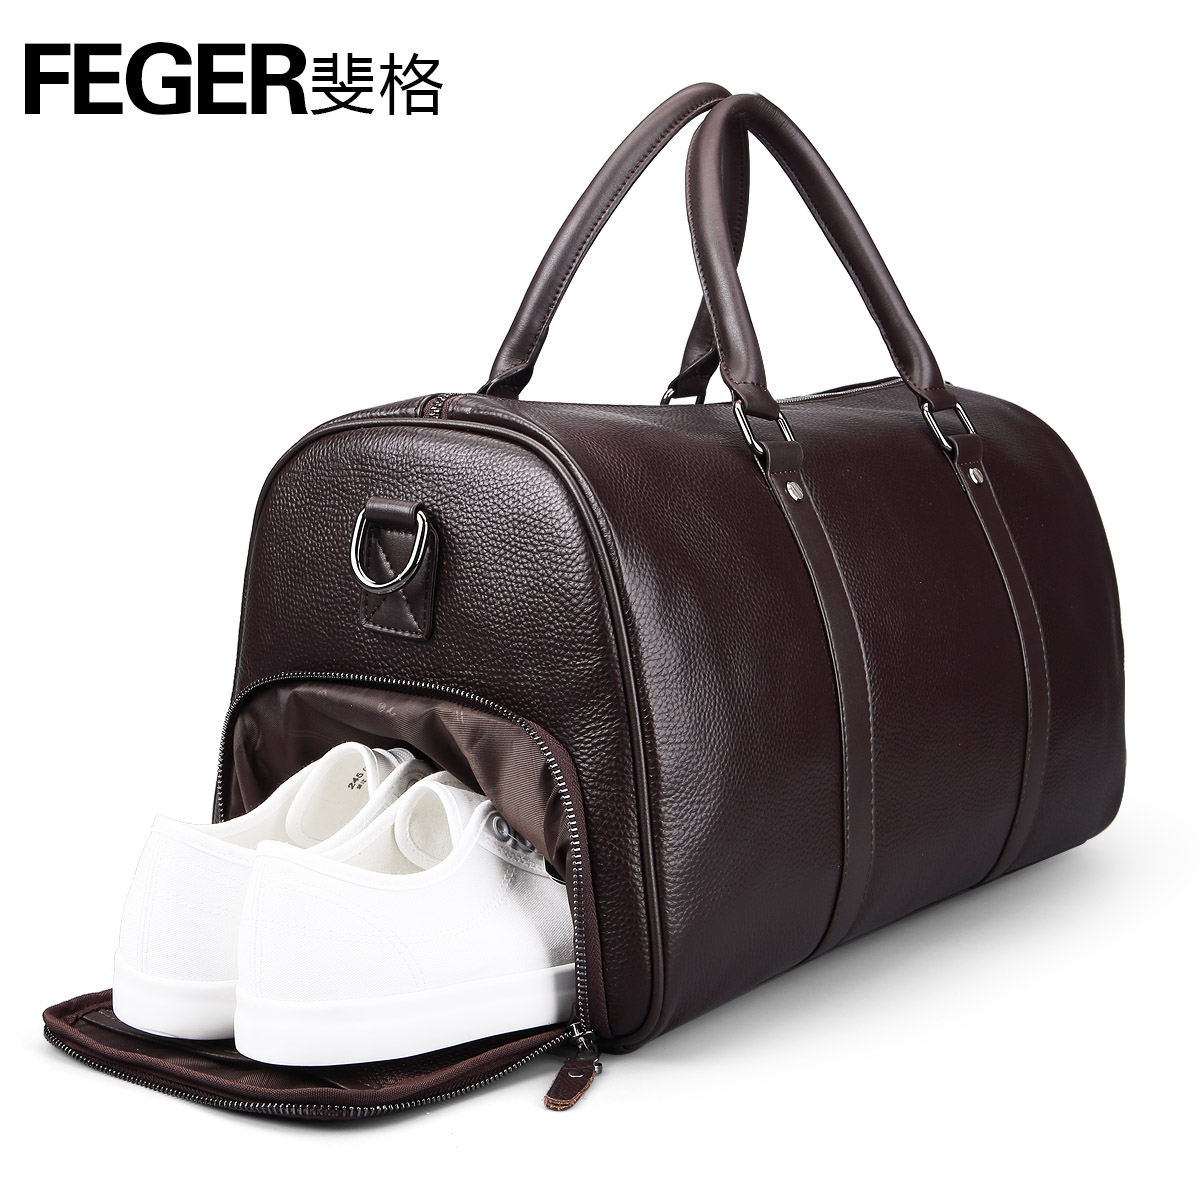 A1102 feger brand soft genuine leather high capacity classic travel Bags with shoe bag for men